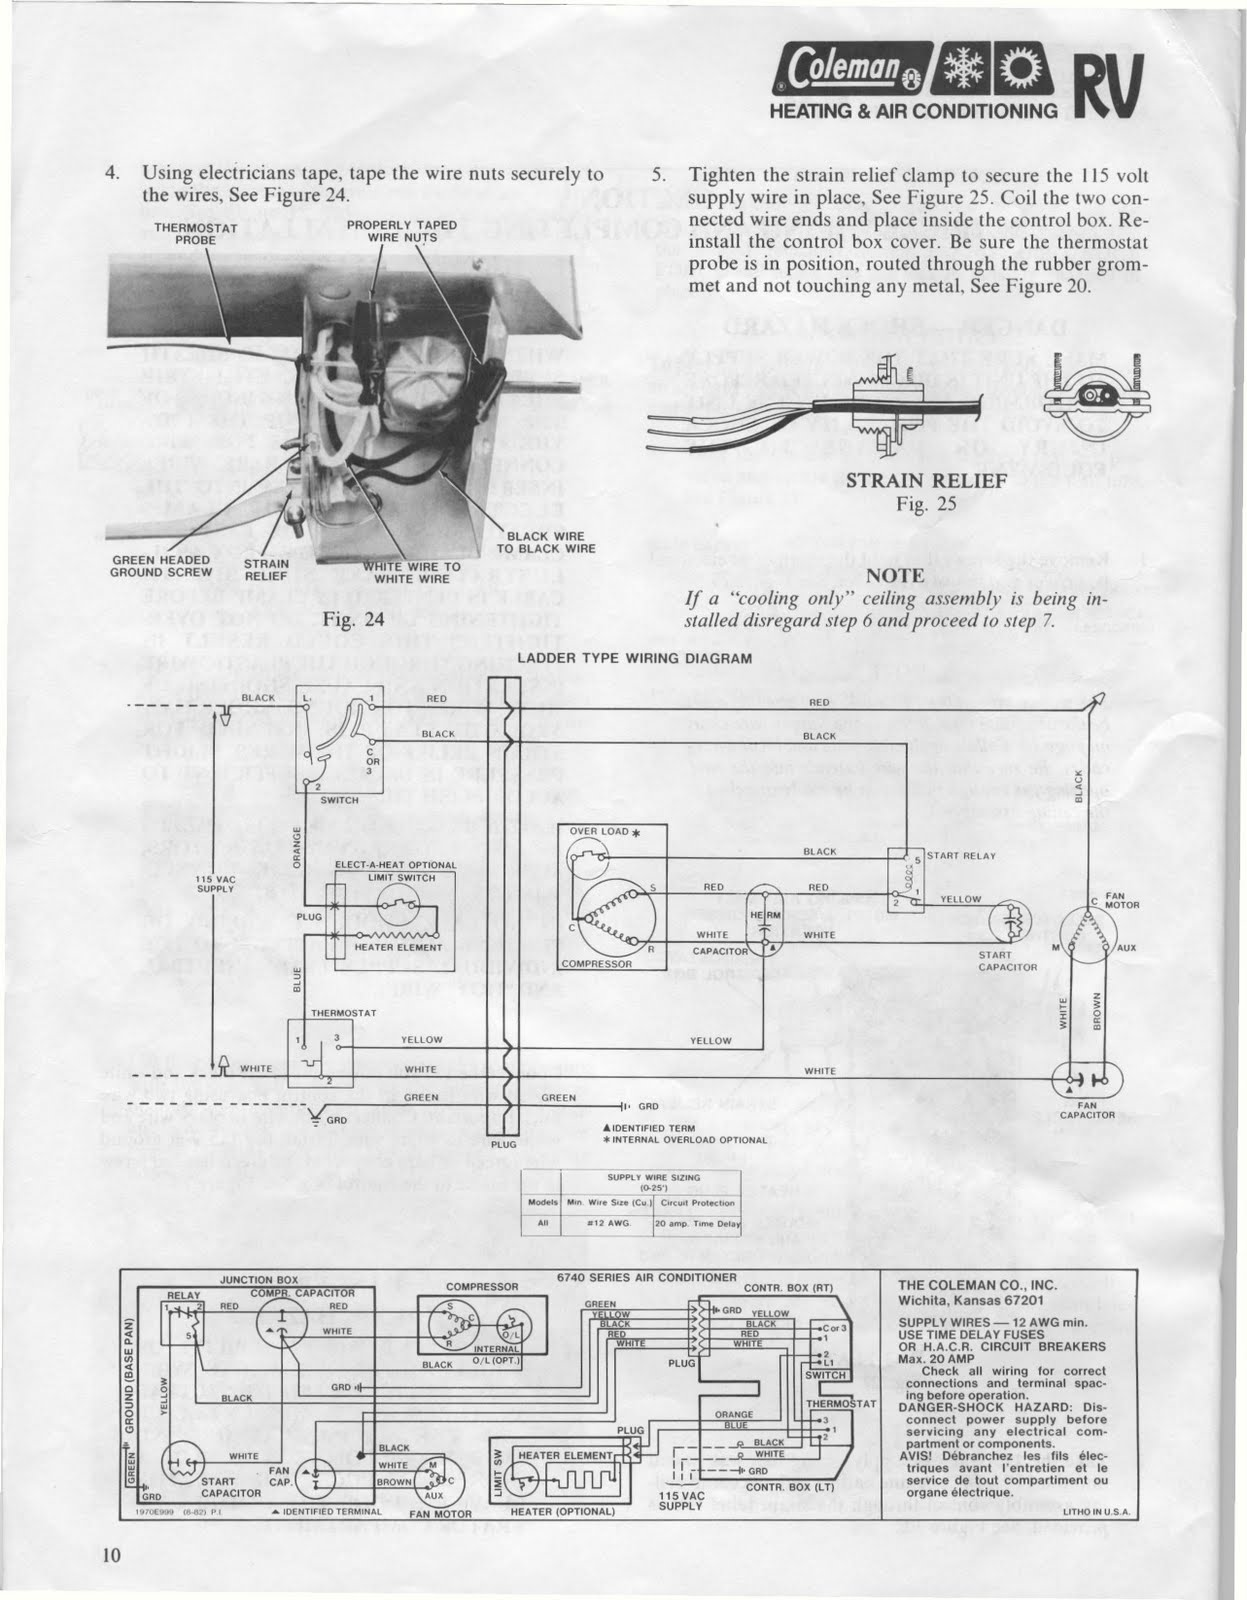 Fleetwood rv manuals wiring diagram 1983 fleetwood pace arrow owners manuals rv air conditioners rh 1983fleetwoodpacearrowownersmanuals blogspot com 2006 fleetwood rv asfbconference2016 Images